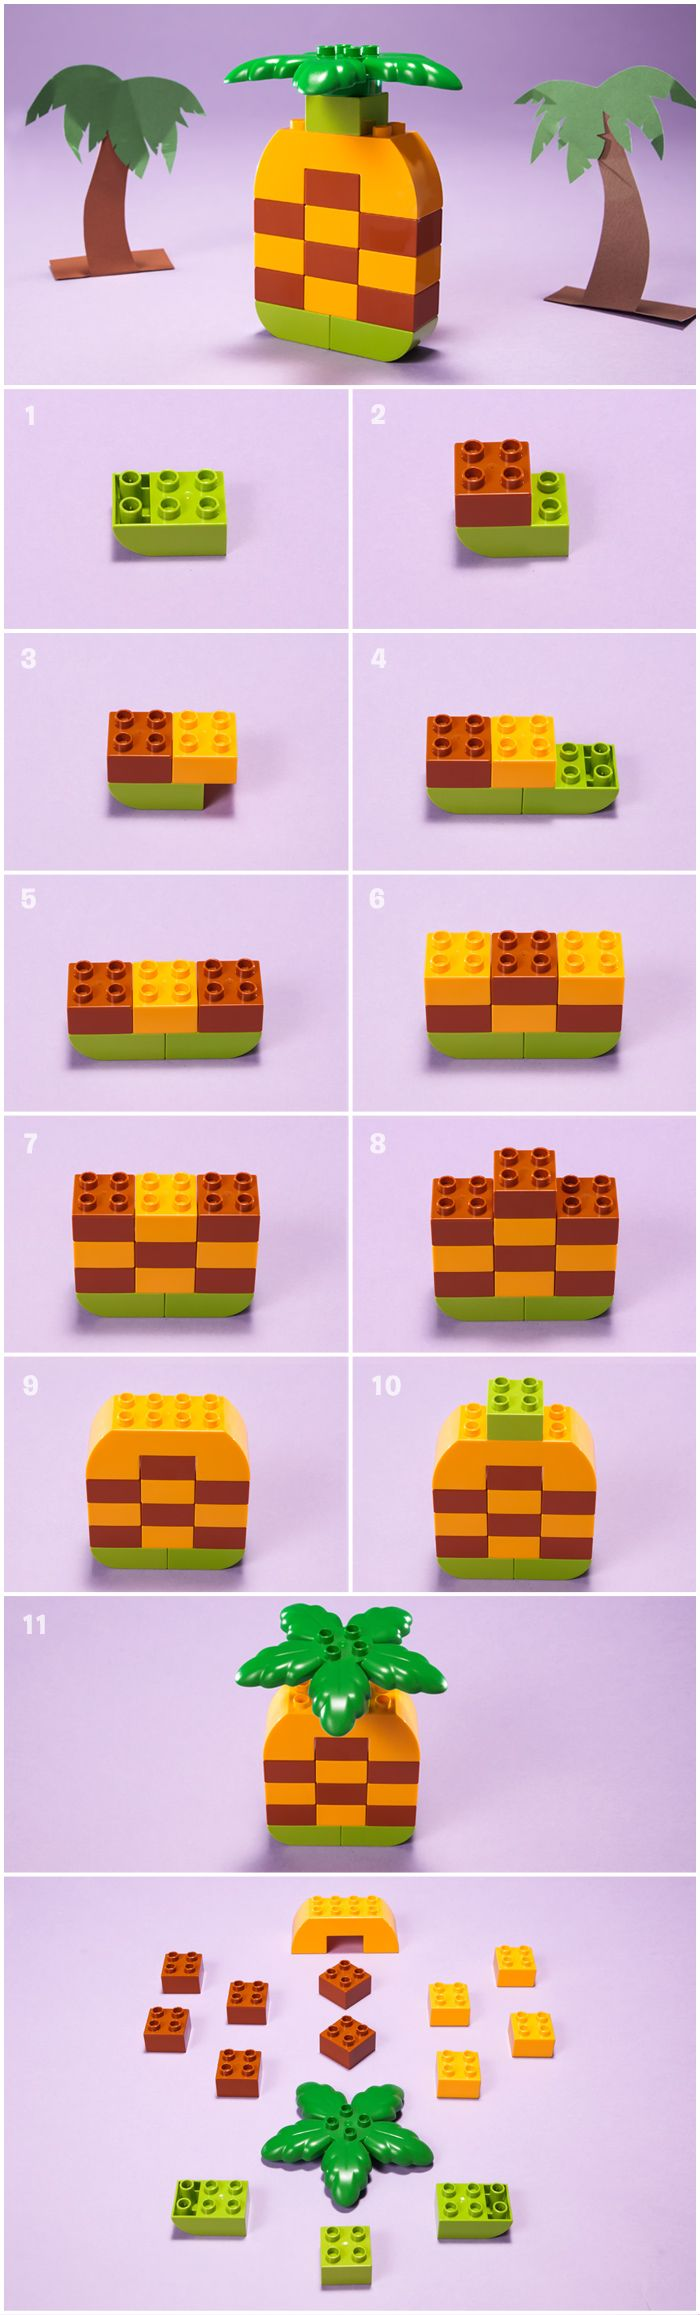 A sweet way to teach children where food comes from - Articles - Family LEGO.com